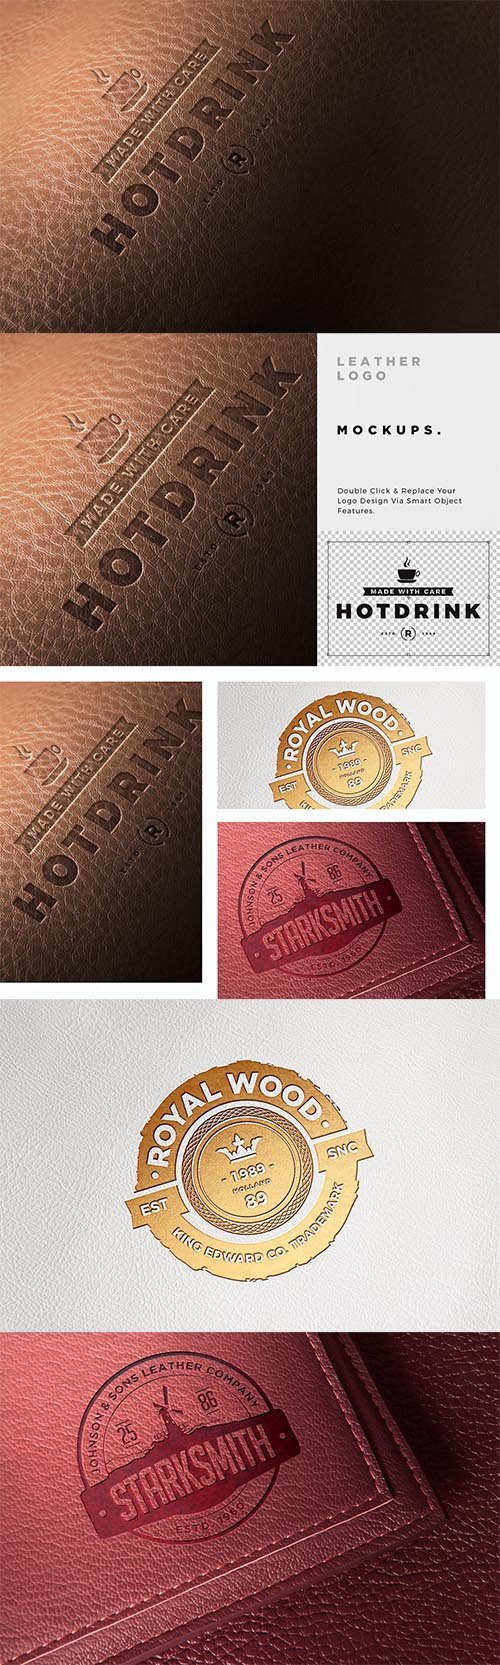 Leather Logo Mockups PSD